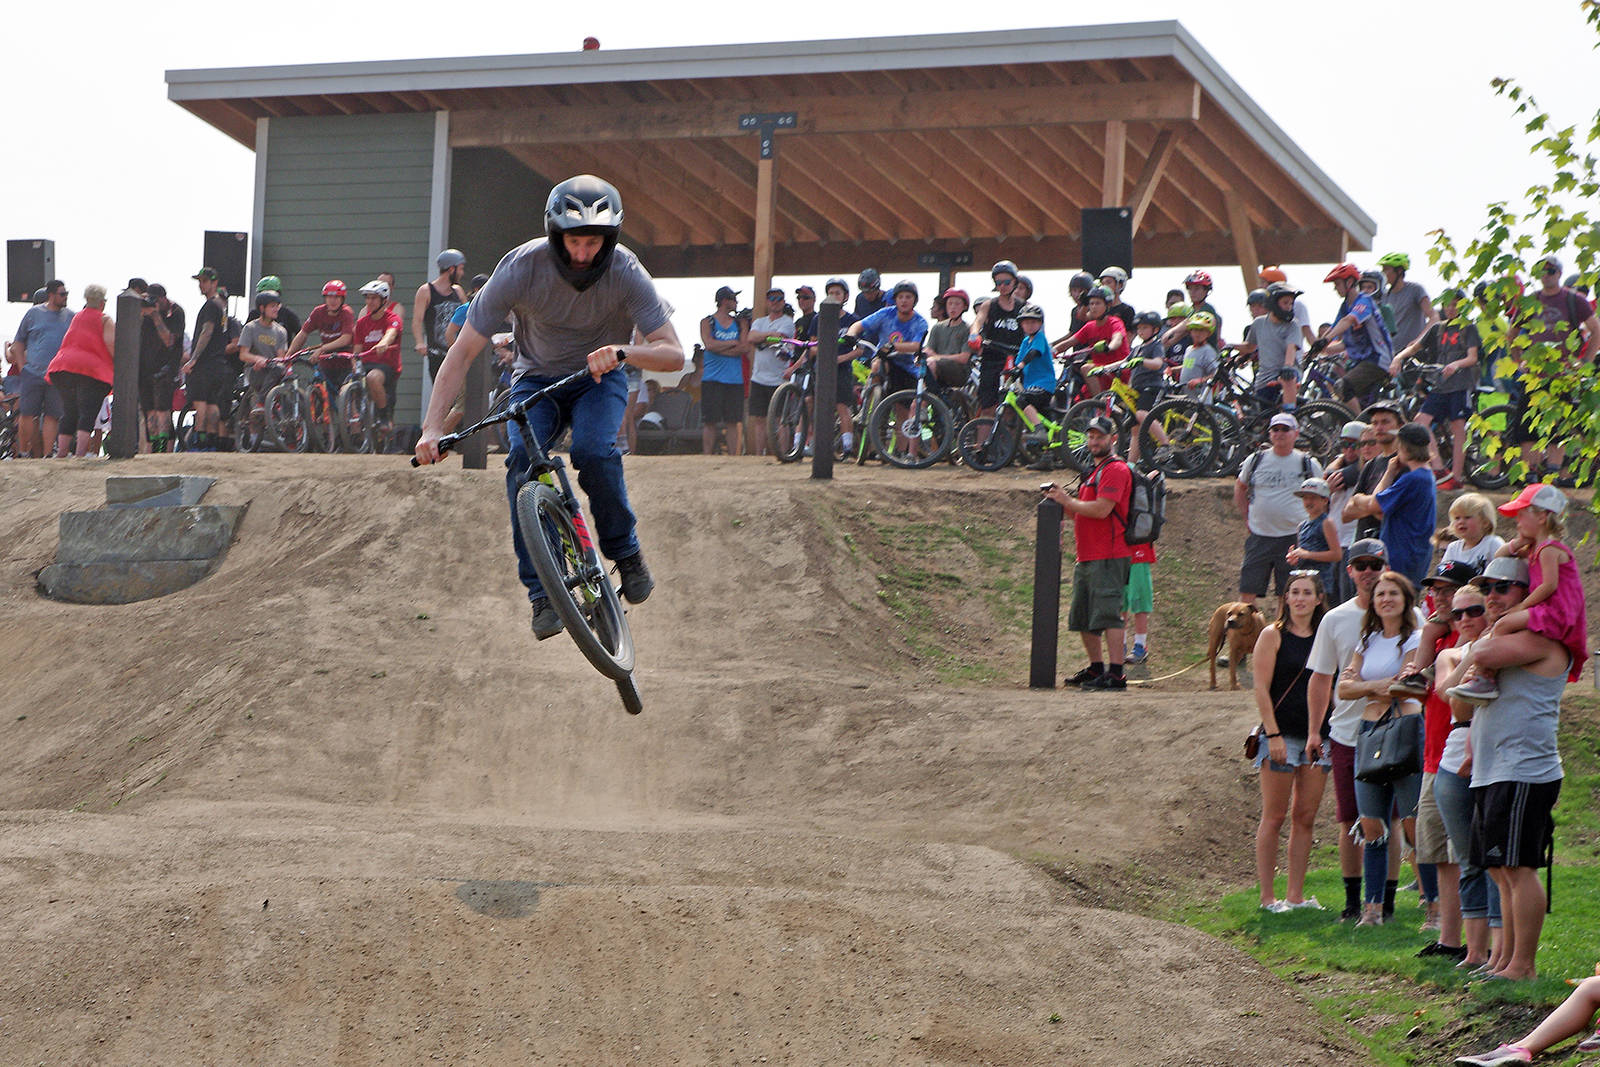 Hundreds attend opening of Steve Smith Bike Park in Nanaimo.